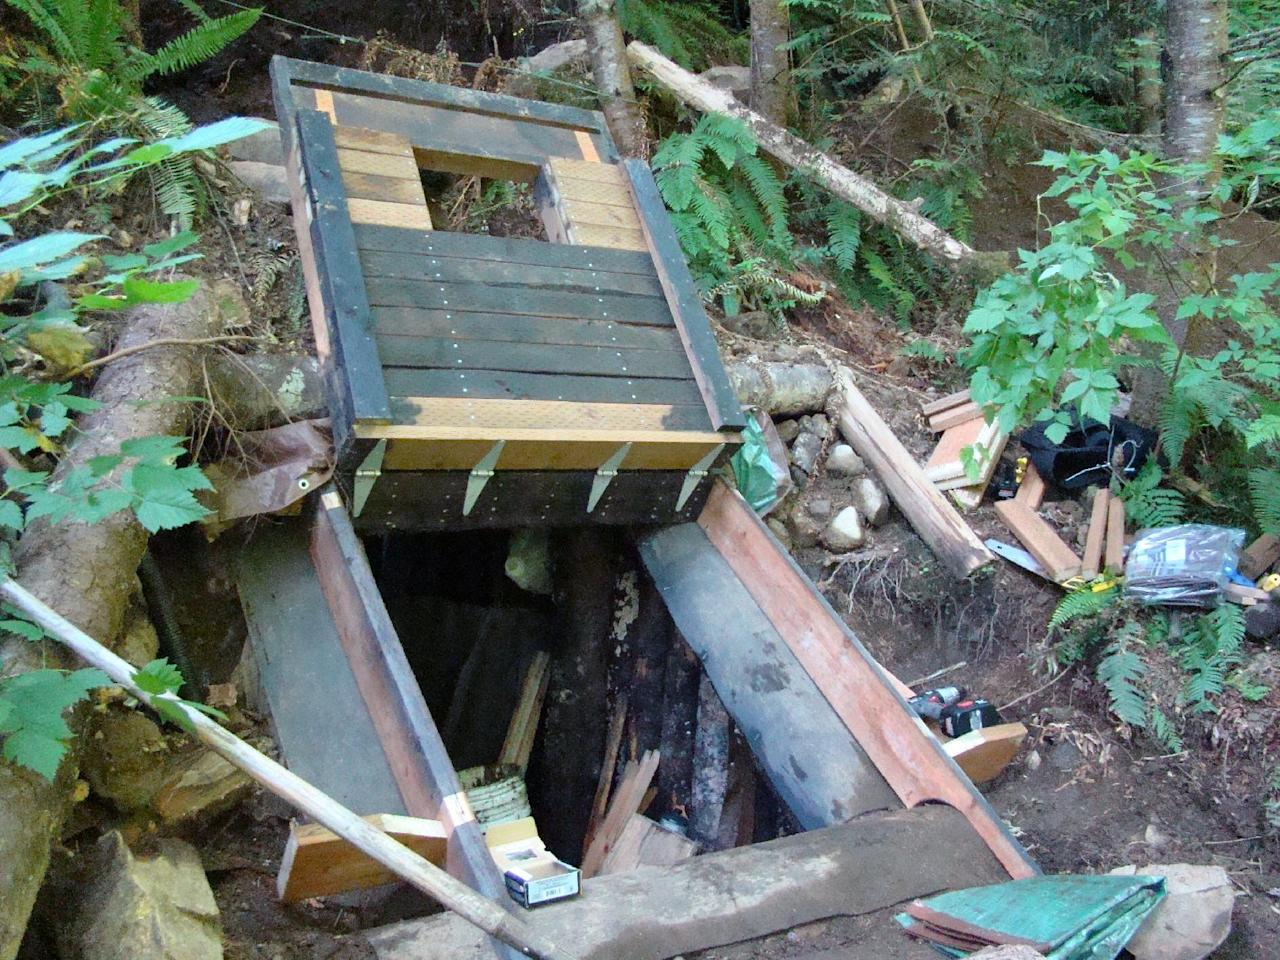 This undated photo provided by the King County Sheriff's Department on Friday, April 27, 2012, shows a bunker that deputies say belongs to a man suspected of killing his wife and daughter and holing up for days in the Cascade foothills east of Seattle. King County Sheriff's Sgt. Cindi West says authorities pumped gas into the underground bunker and they believe someone is inside. (AP Photo/King County Sheriff's Department)